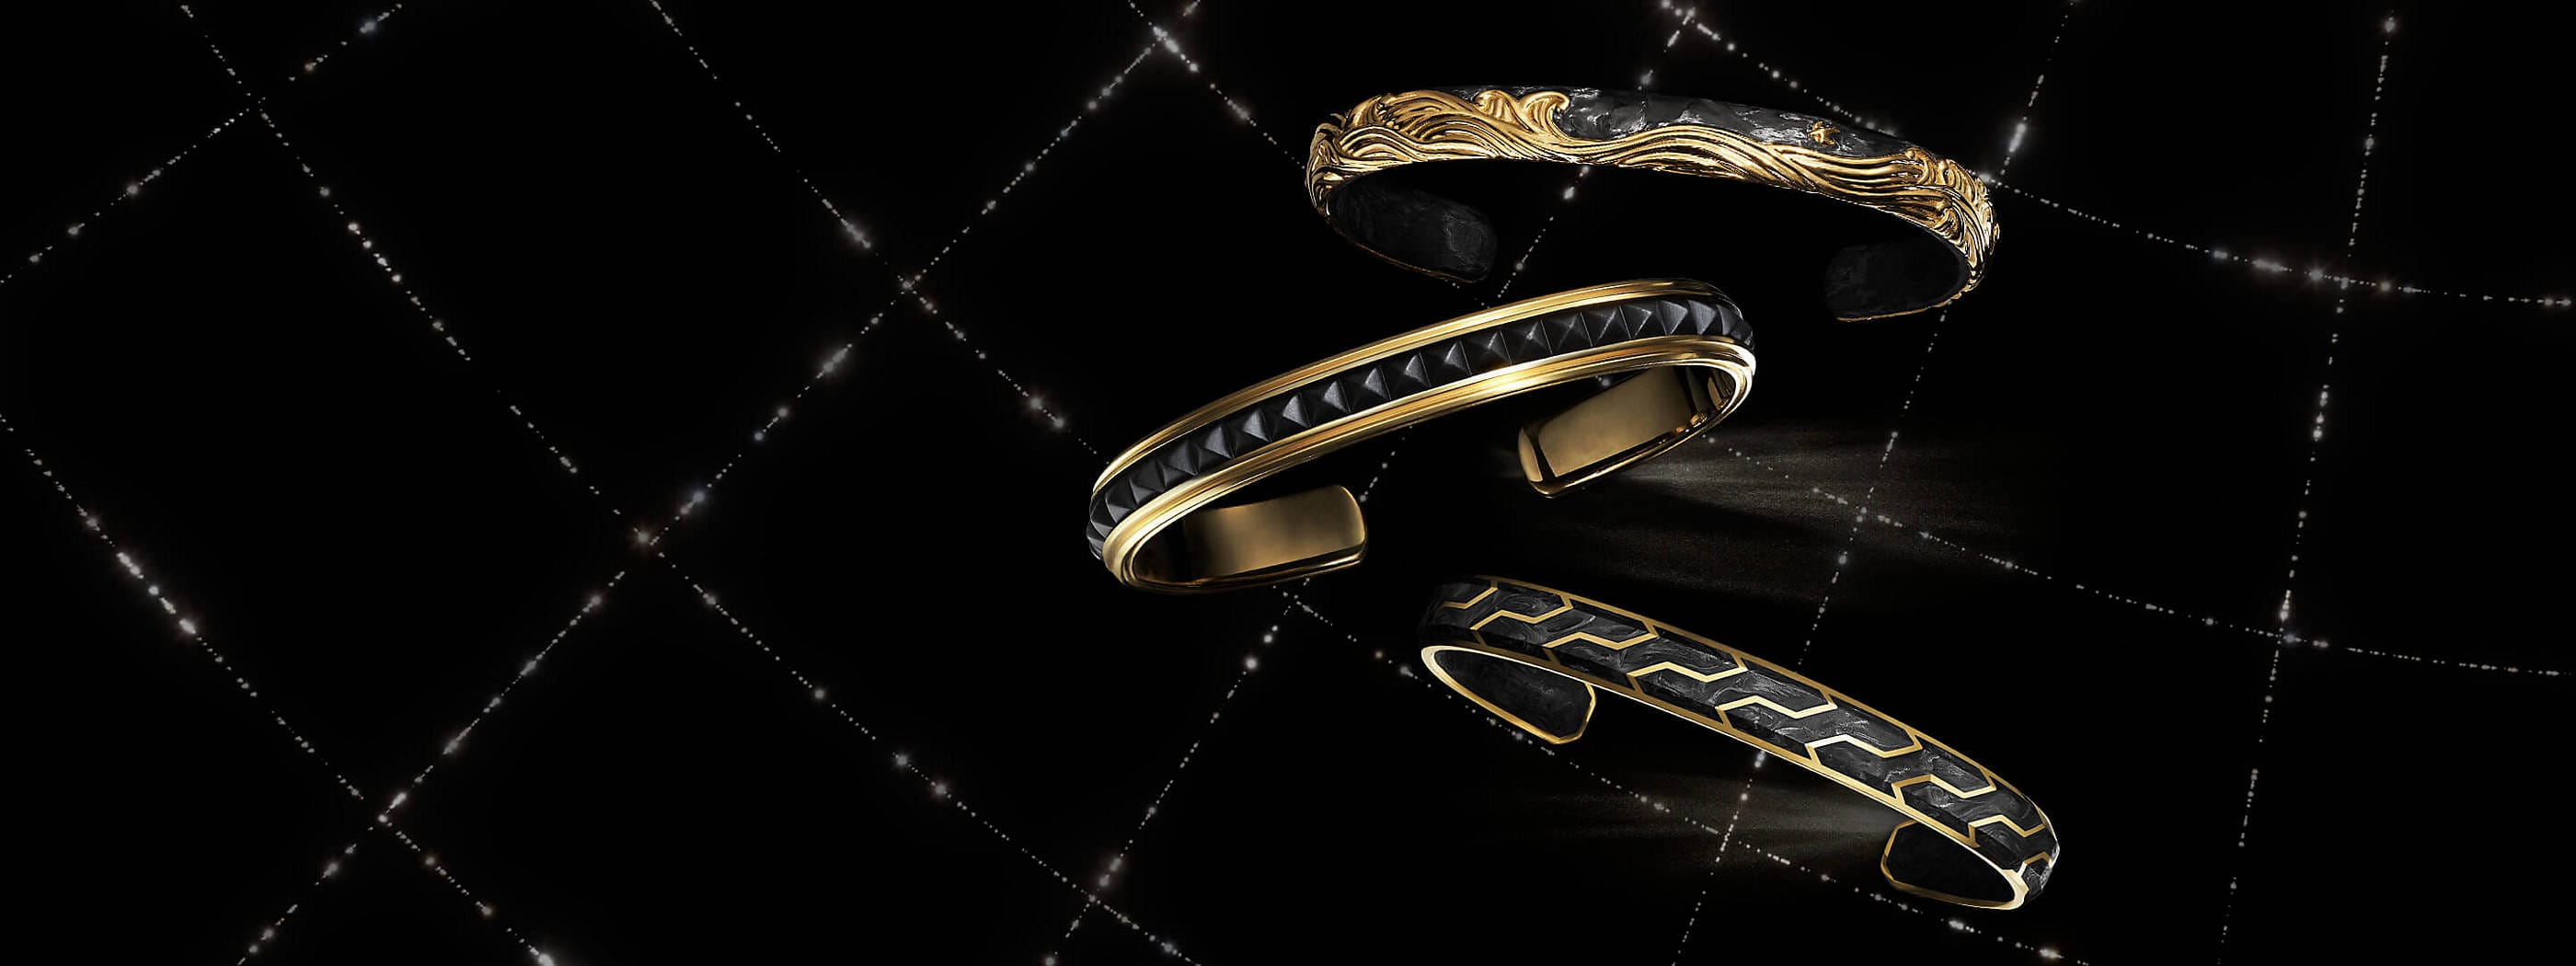 A color photo shows three David Yurman men's bracelets floating in front of a black background with white latitude and longitude lines. The jewelry is crafted from 18K yellow gold with or without forged carbon or black titanium.